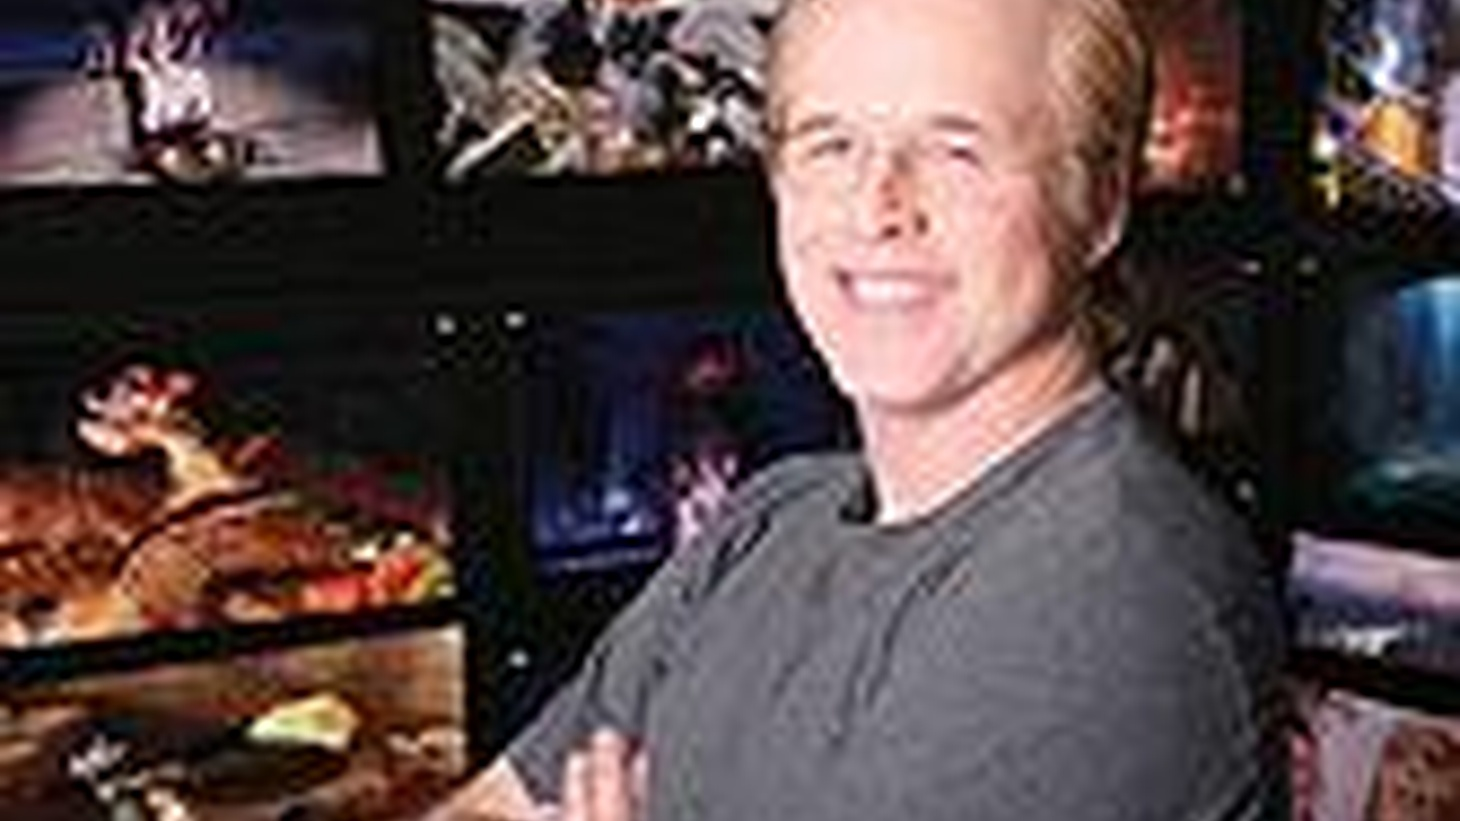 Director Brad Bird (The Iron Giant, The Incredibles) uses animation as a format to tell stories of emotional intimacy.  His lates film for Disney/Pixar is Ratatouille.